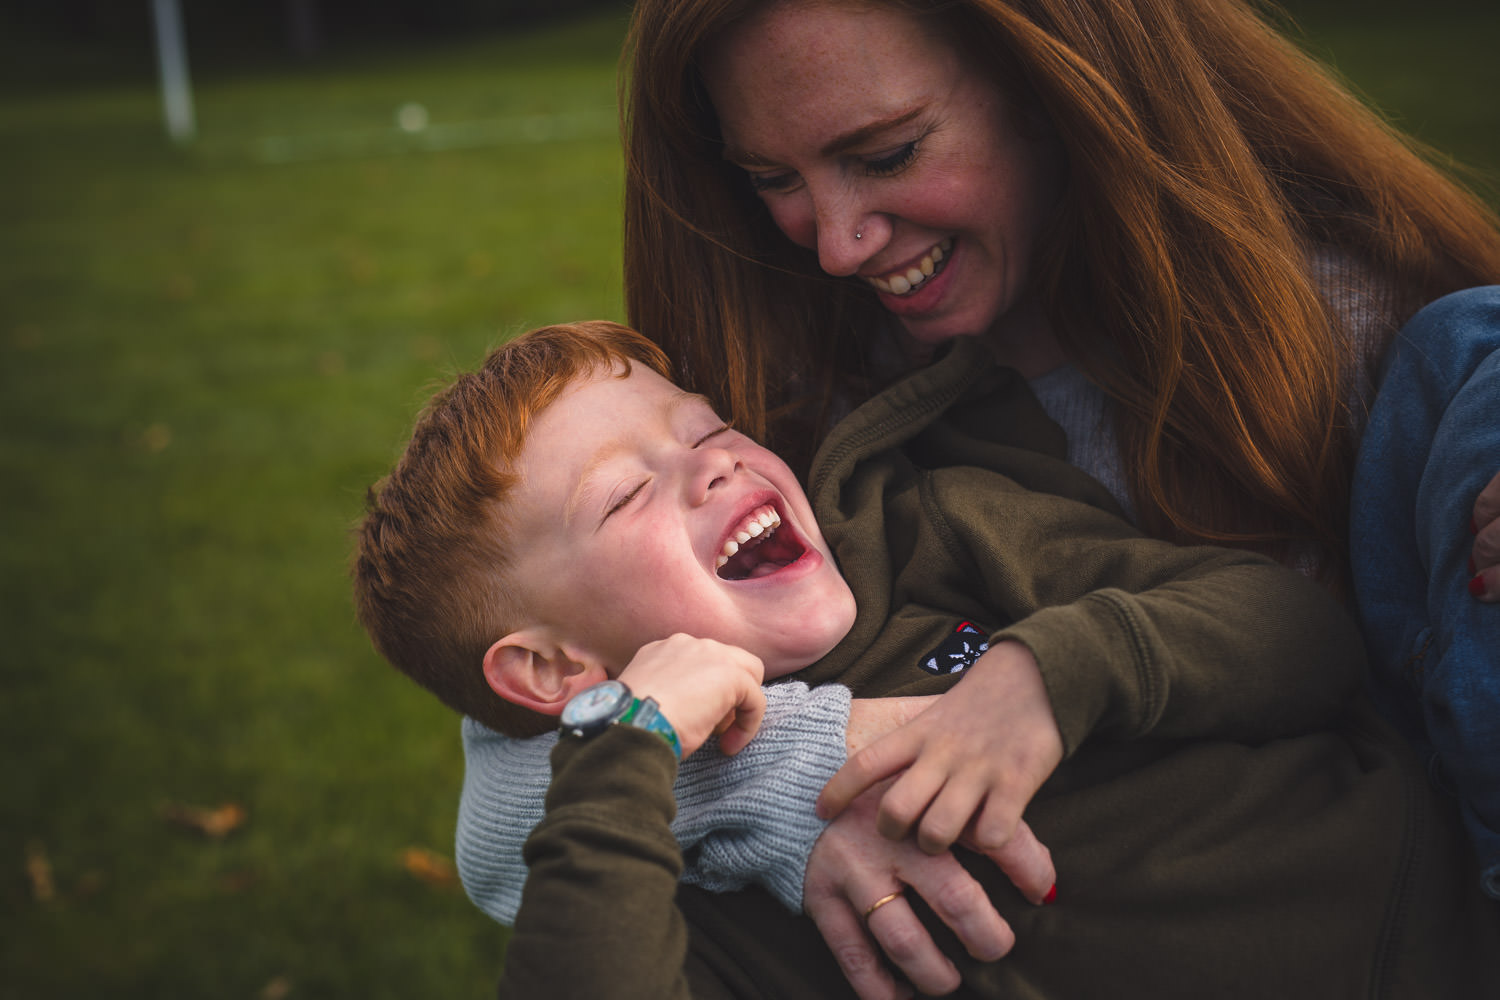 Mother tickles her son while laughing in a park